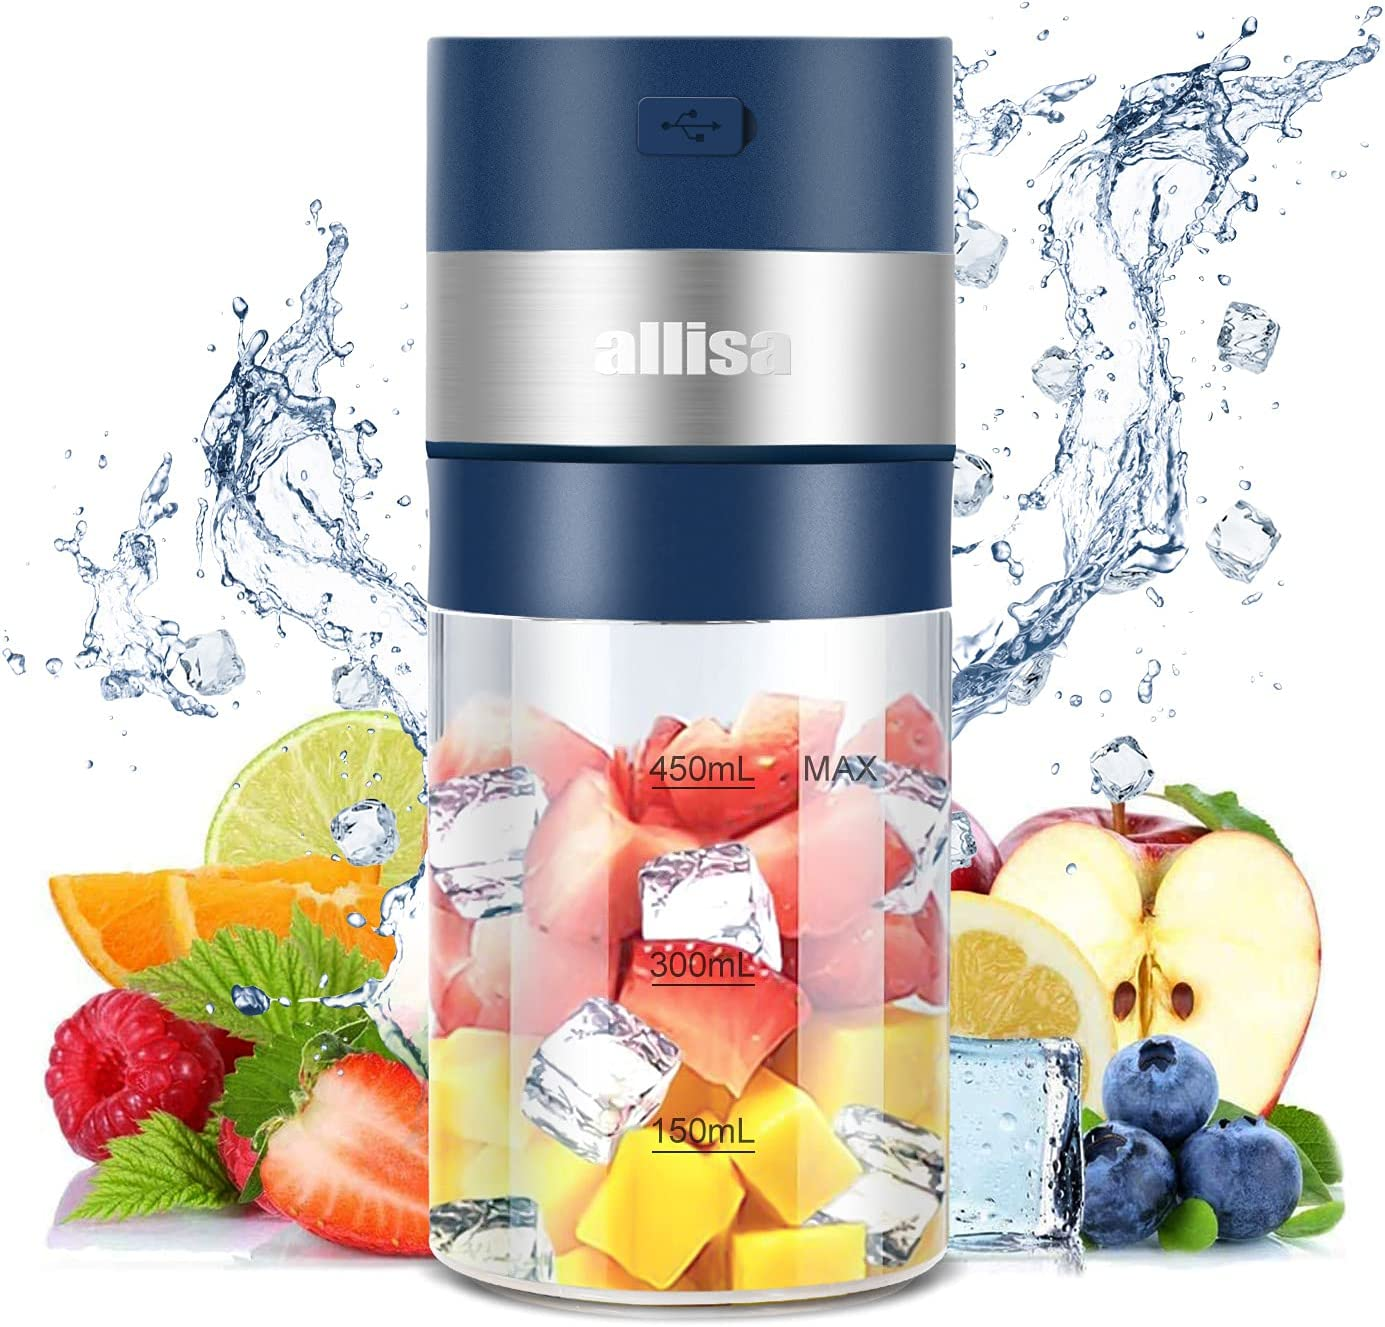 allisa Portable Blender for Shakes Protein Fruit Smoothies Personal Mini Small Electric Blender Mixer Usb Rechargeable 85 W Mini Blender with 6 Blades 450ML (Navy Blue)